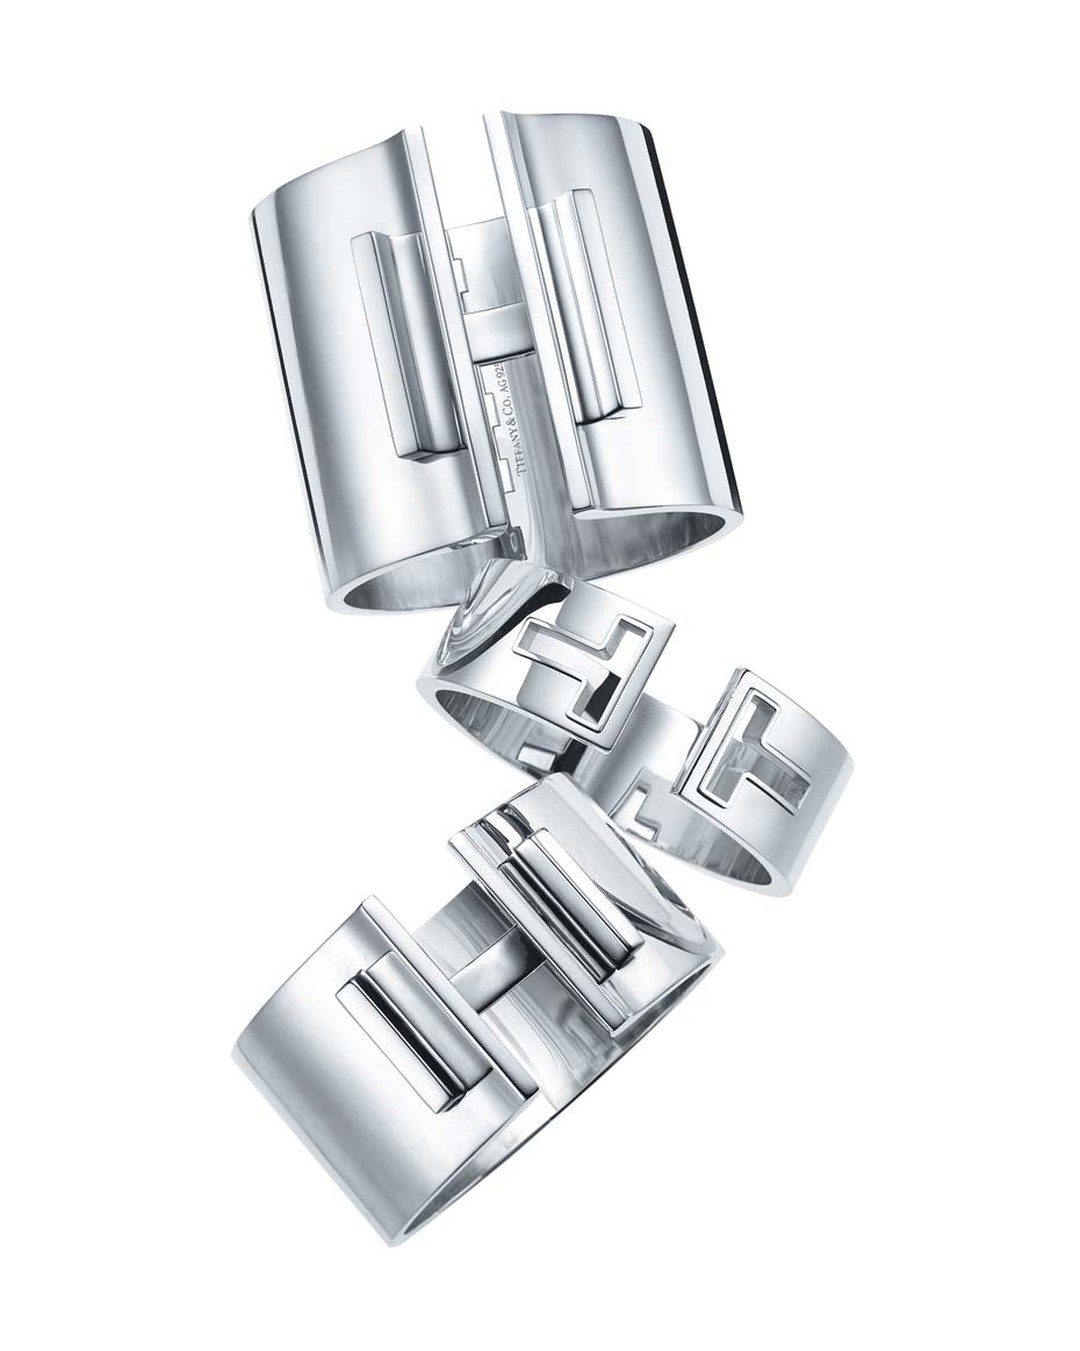 Tiffany and Co. Tiffany T bar hinged cuffs in sterling silver.